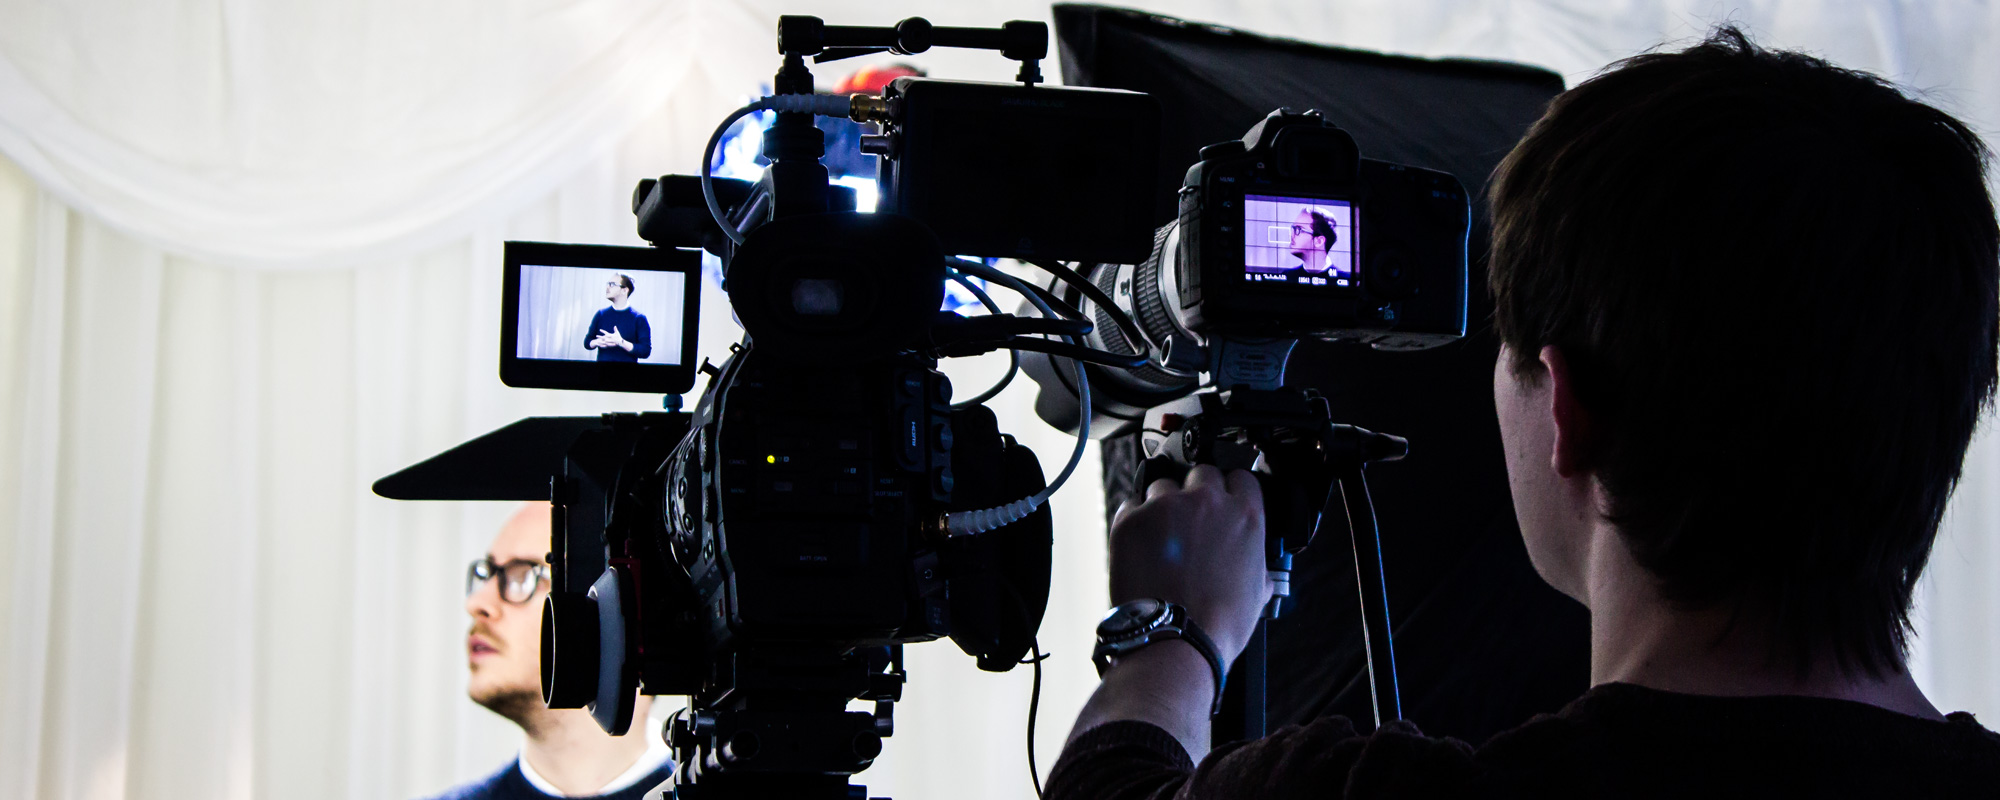 Current RMS is the perfect rental managemnte solution for the Broadcast and production industry